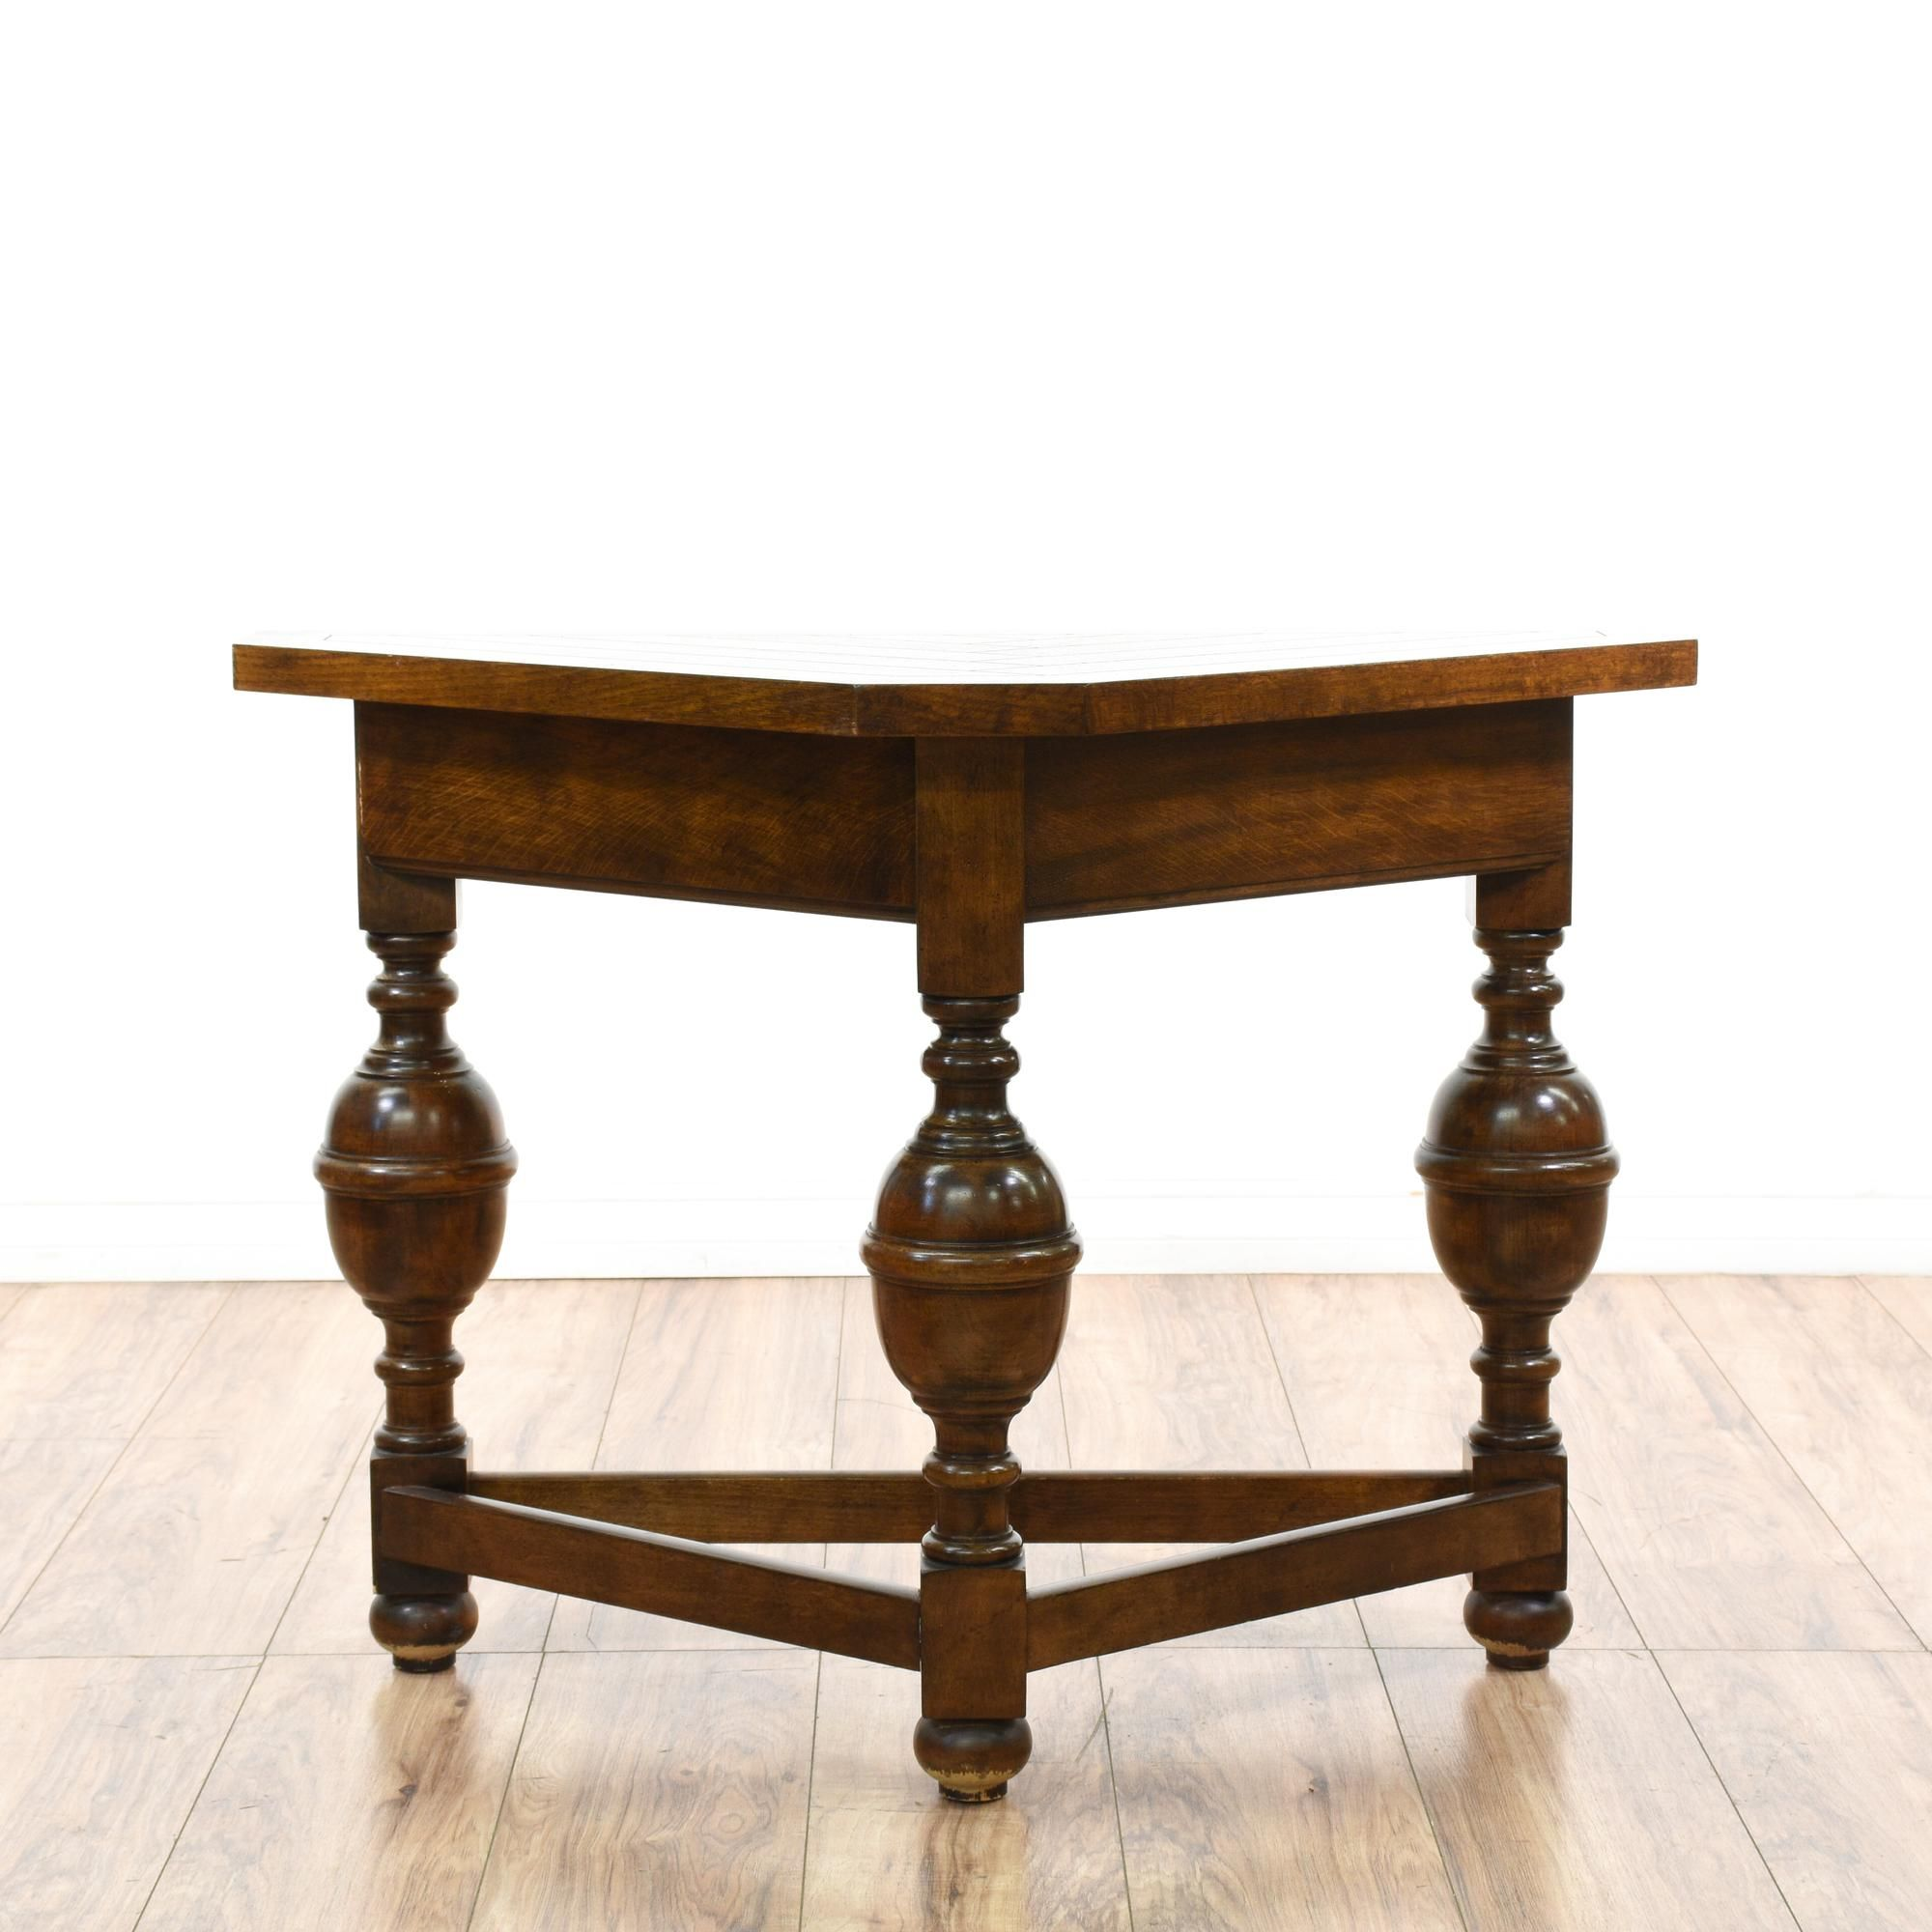 This corner console table is featured in a solid wood with a this corner console table is featured in a solid wood with a glossy dark cherry finish this side table has a triangle corner top with bulky turned spindle geotapseo Gallery